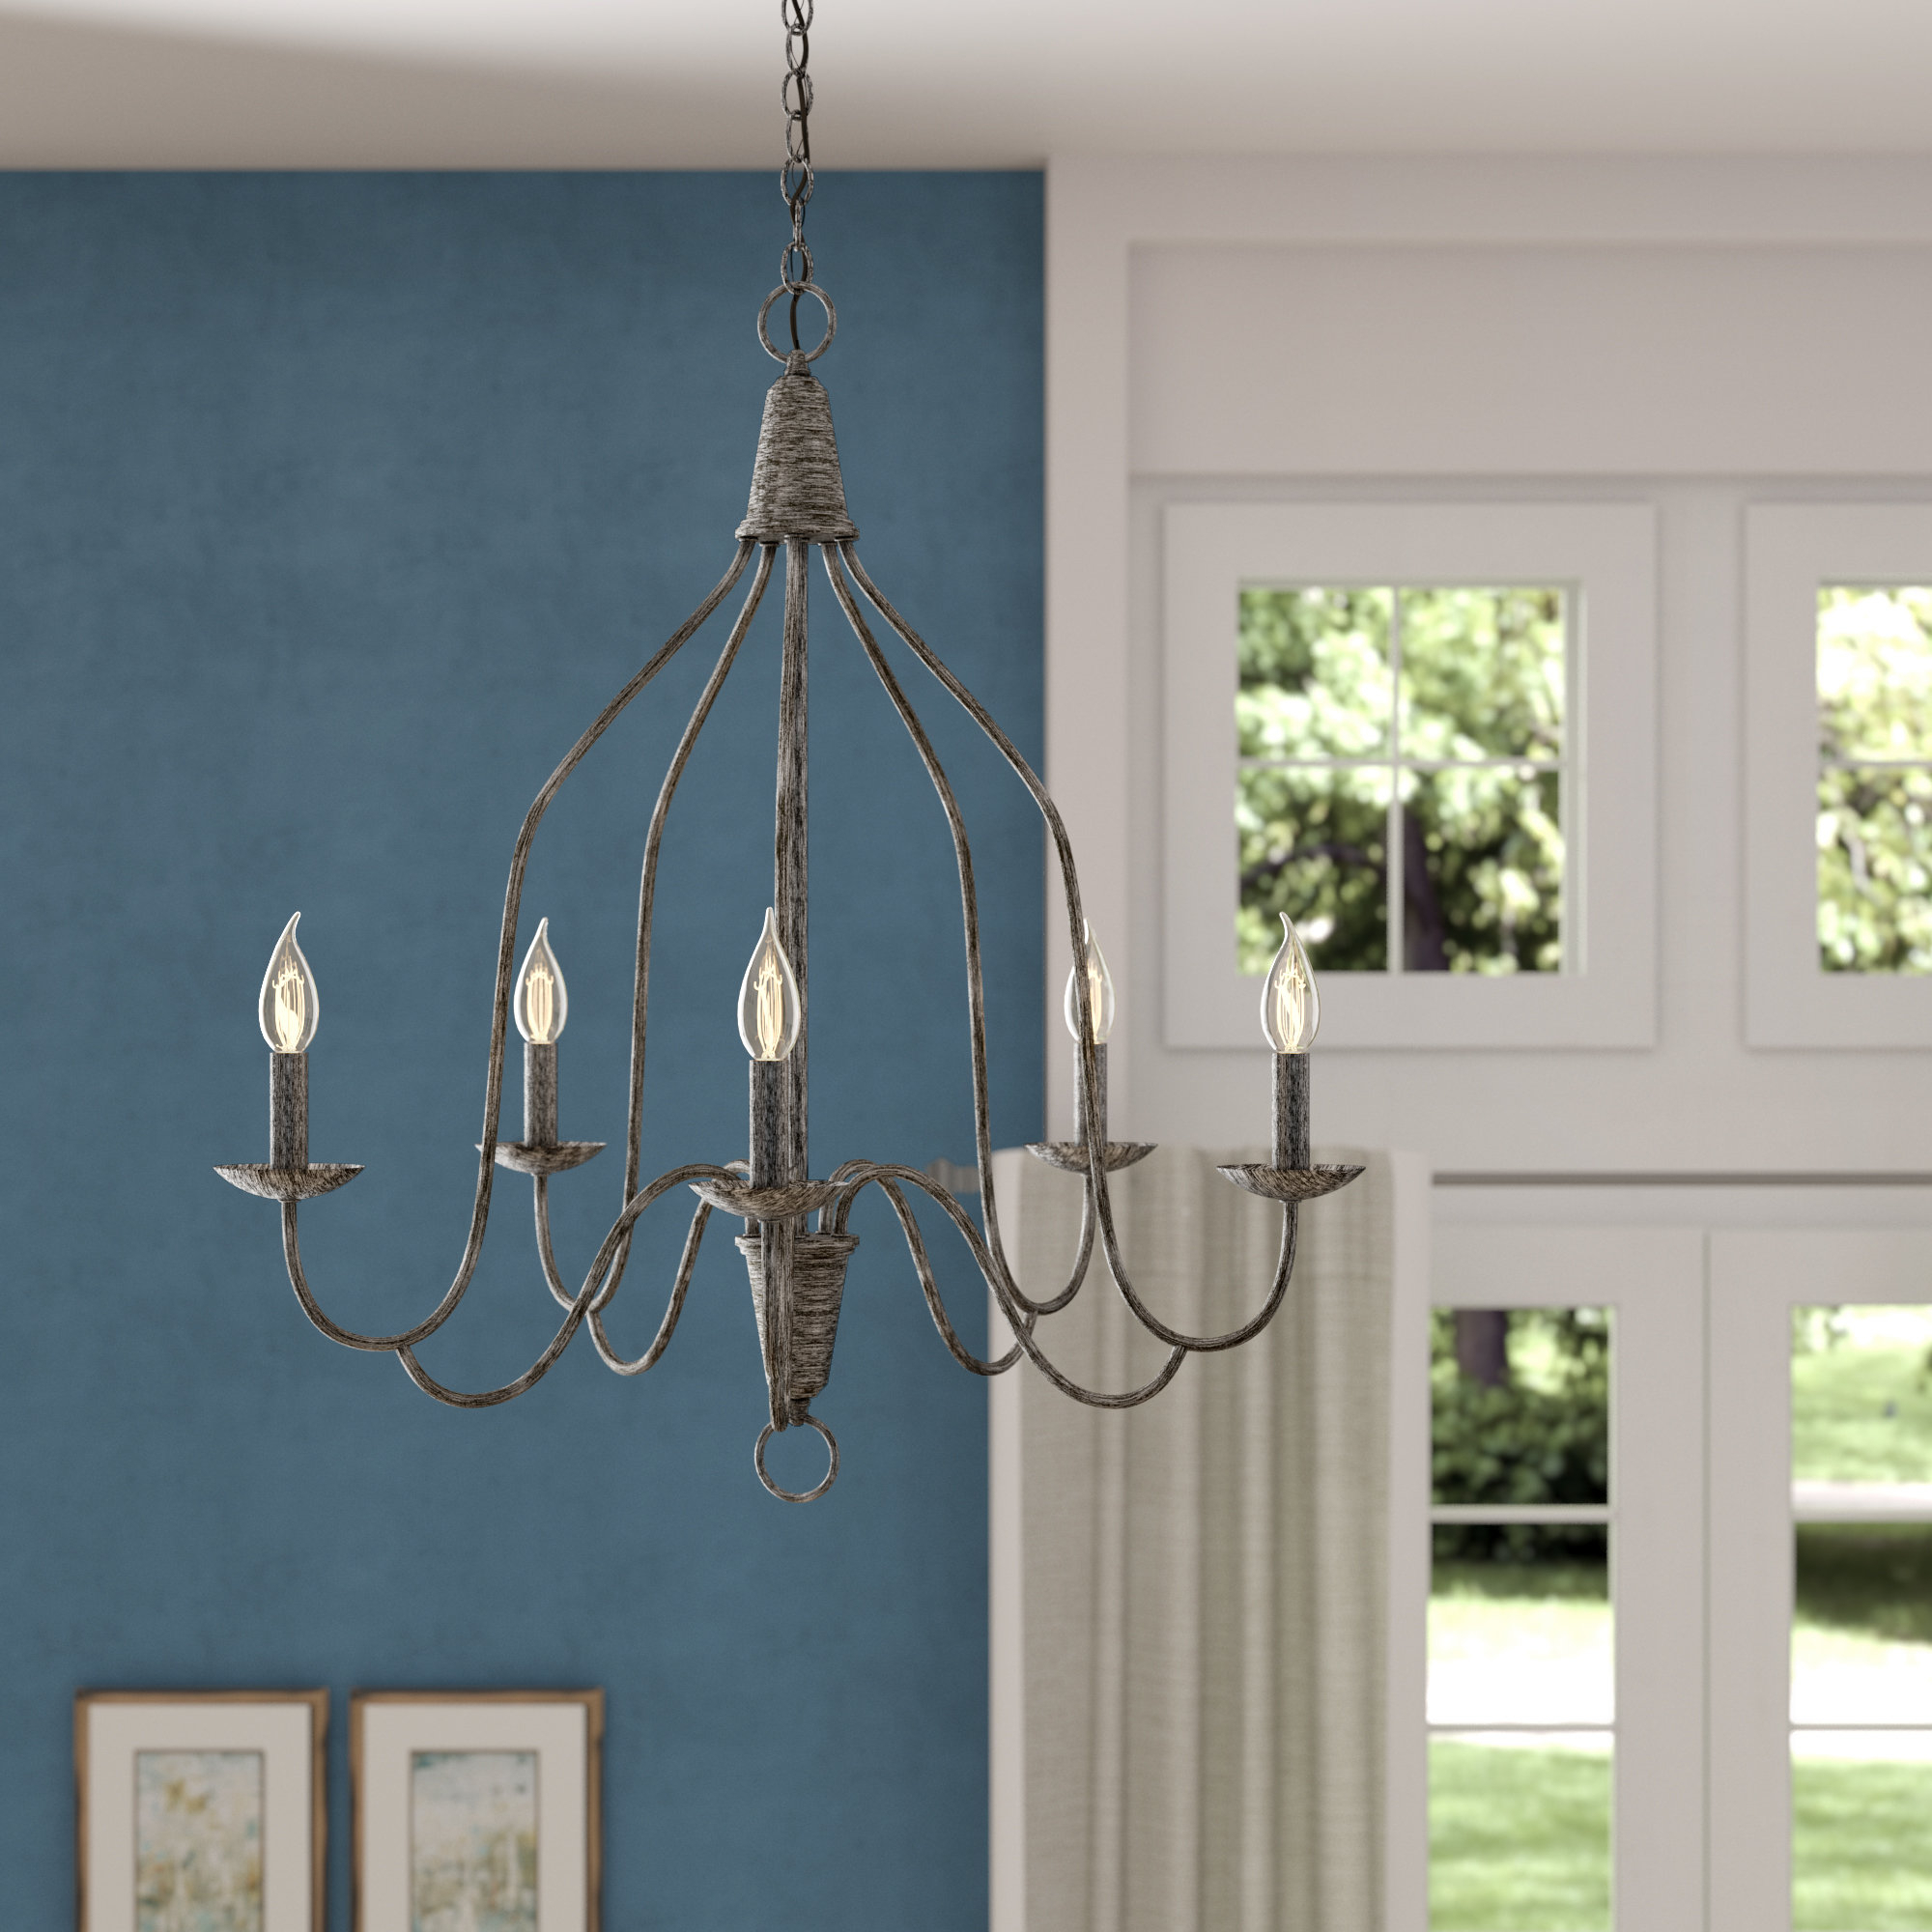 Florentina 5 Light Candle Style Chandeliers Inside Most Recent Geeta 5 Light Candle Style Chandelier (Gallery 18 of 20)